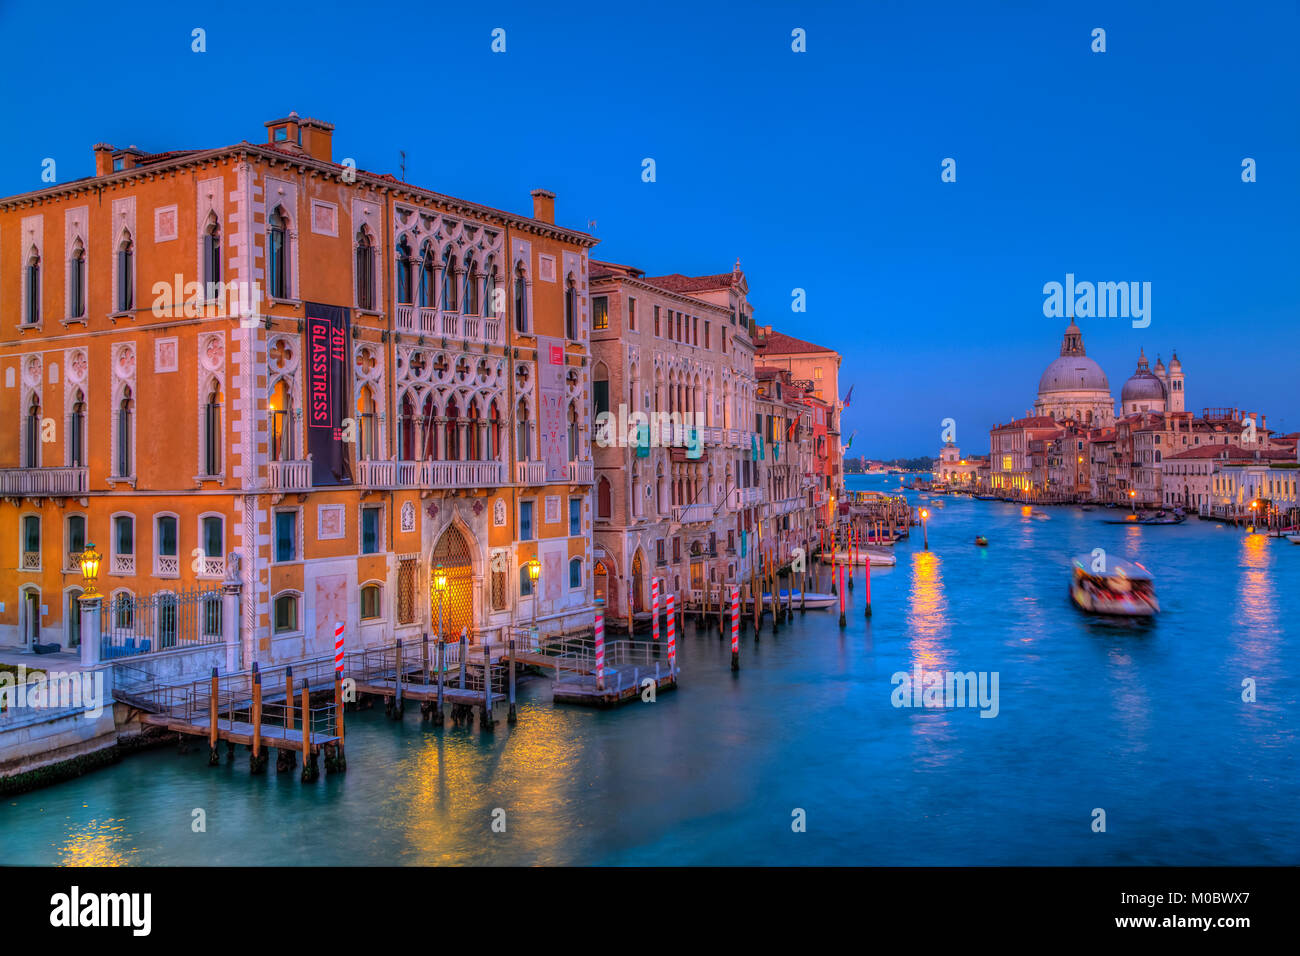 An evening view of the Grand Canal, Veneto, Venice, Italy, Europe. - Stock Image